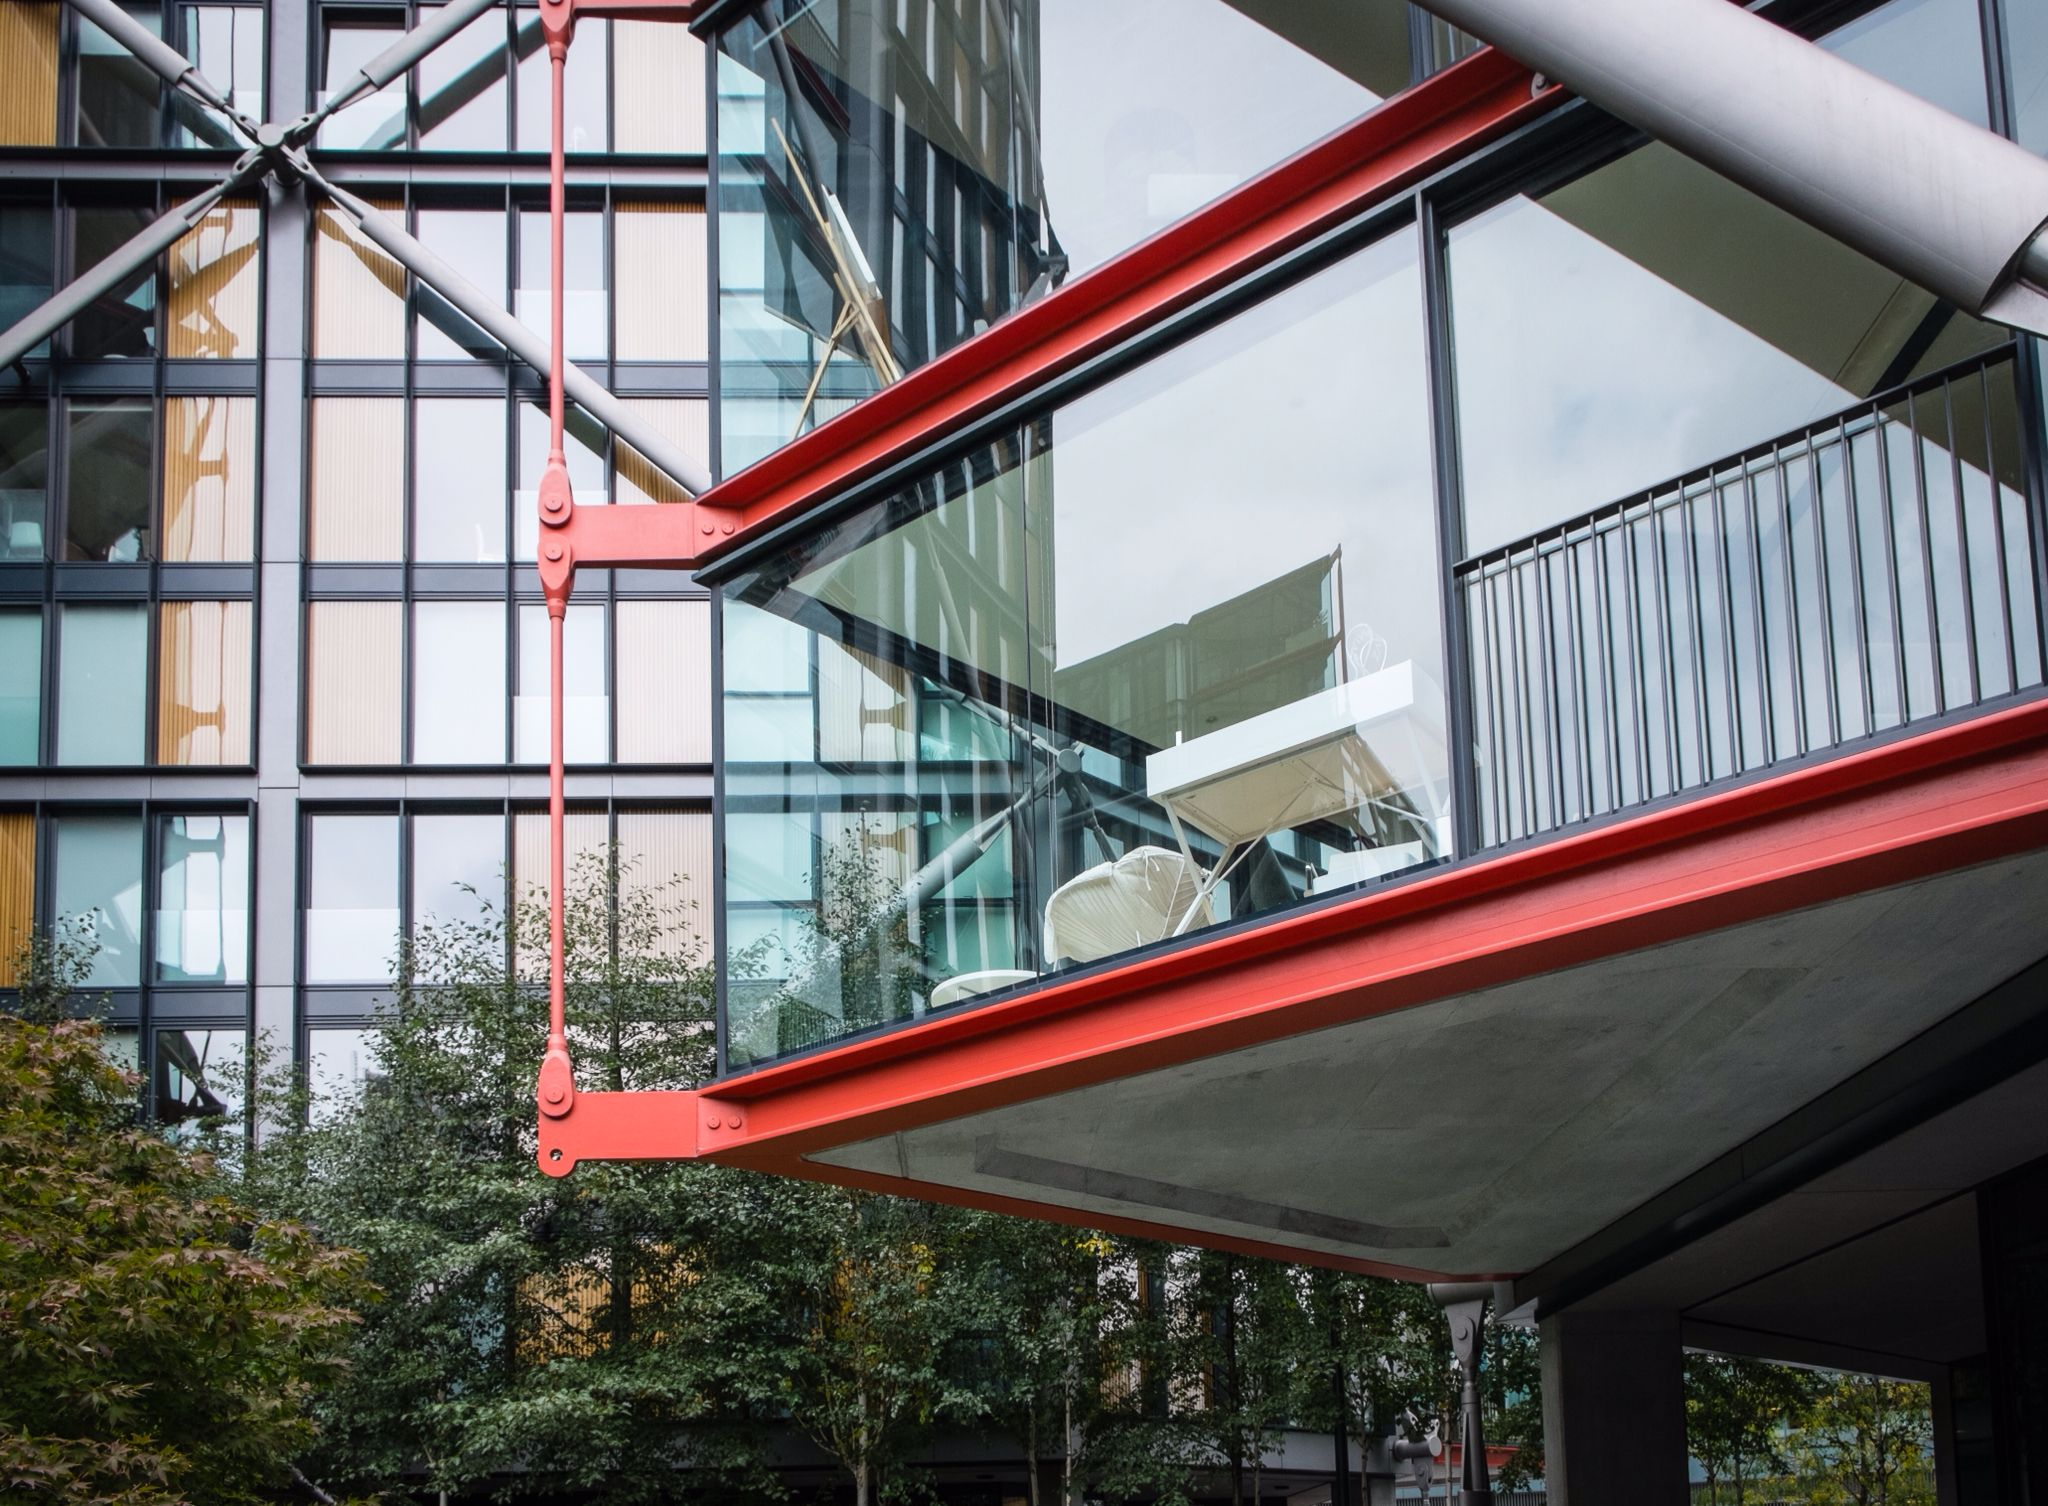 Studio reed jonathan reed s spare crafted interior design - Neo Bankside Neo Bankside Pinterest Architecture